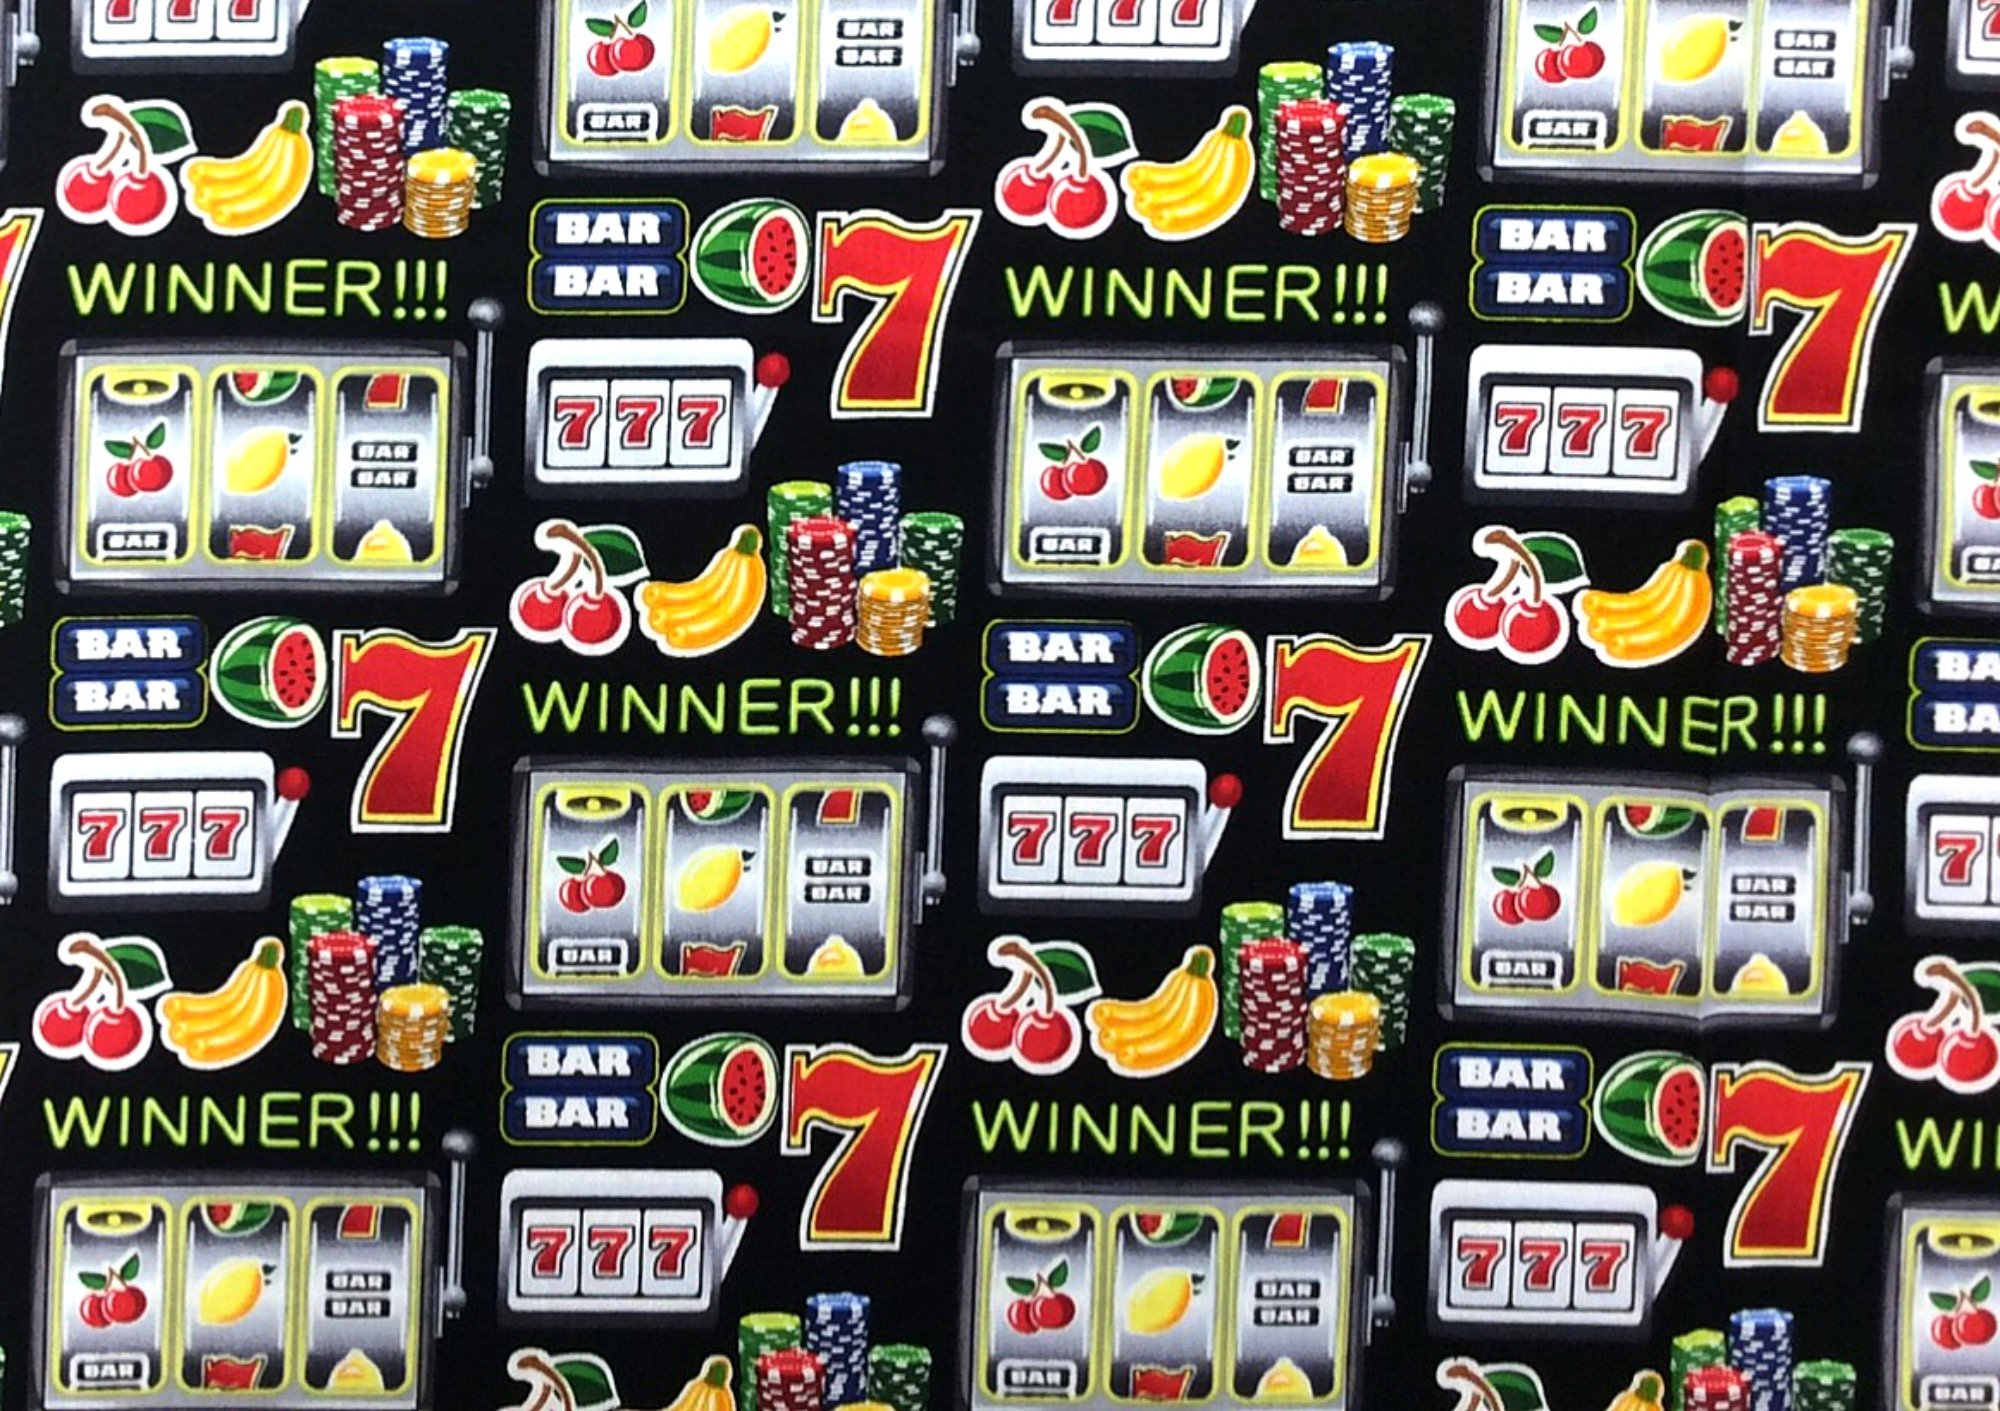 Casino Slot Machine Gambling Games of Chance Jackpot Cotton Quilt Fabric BE37